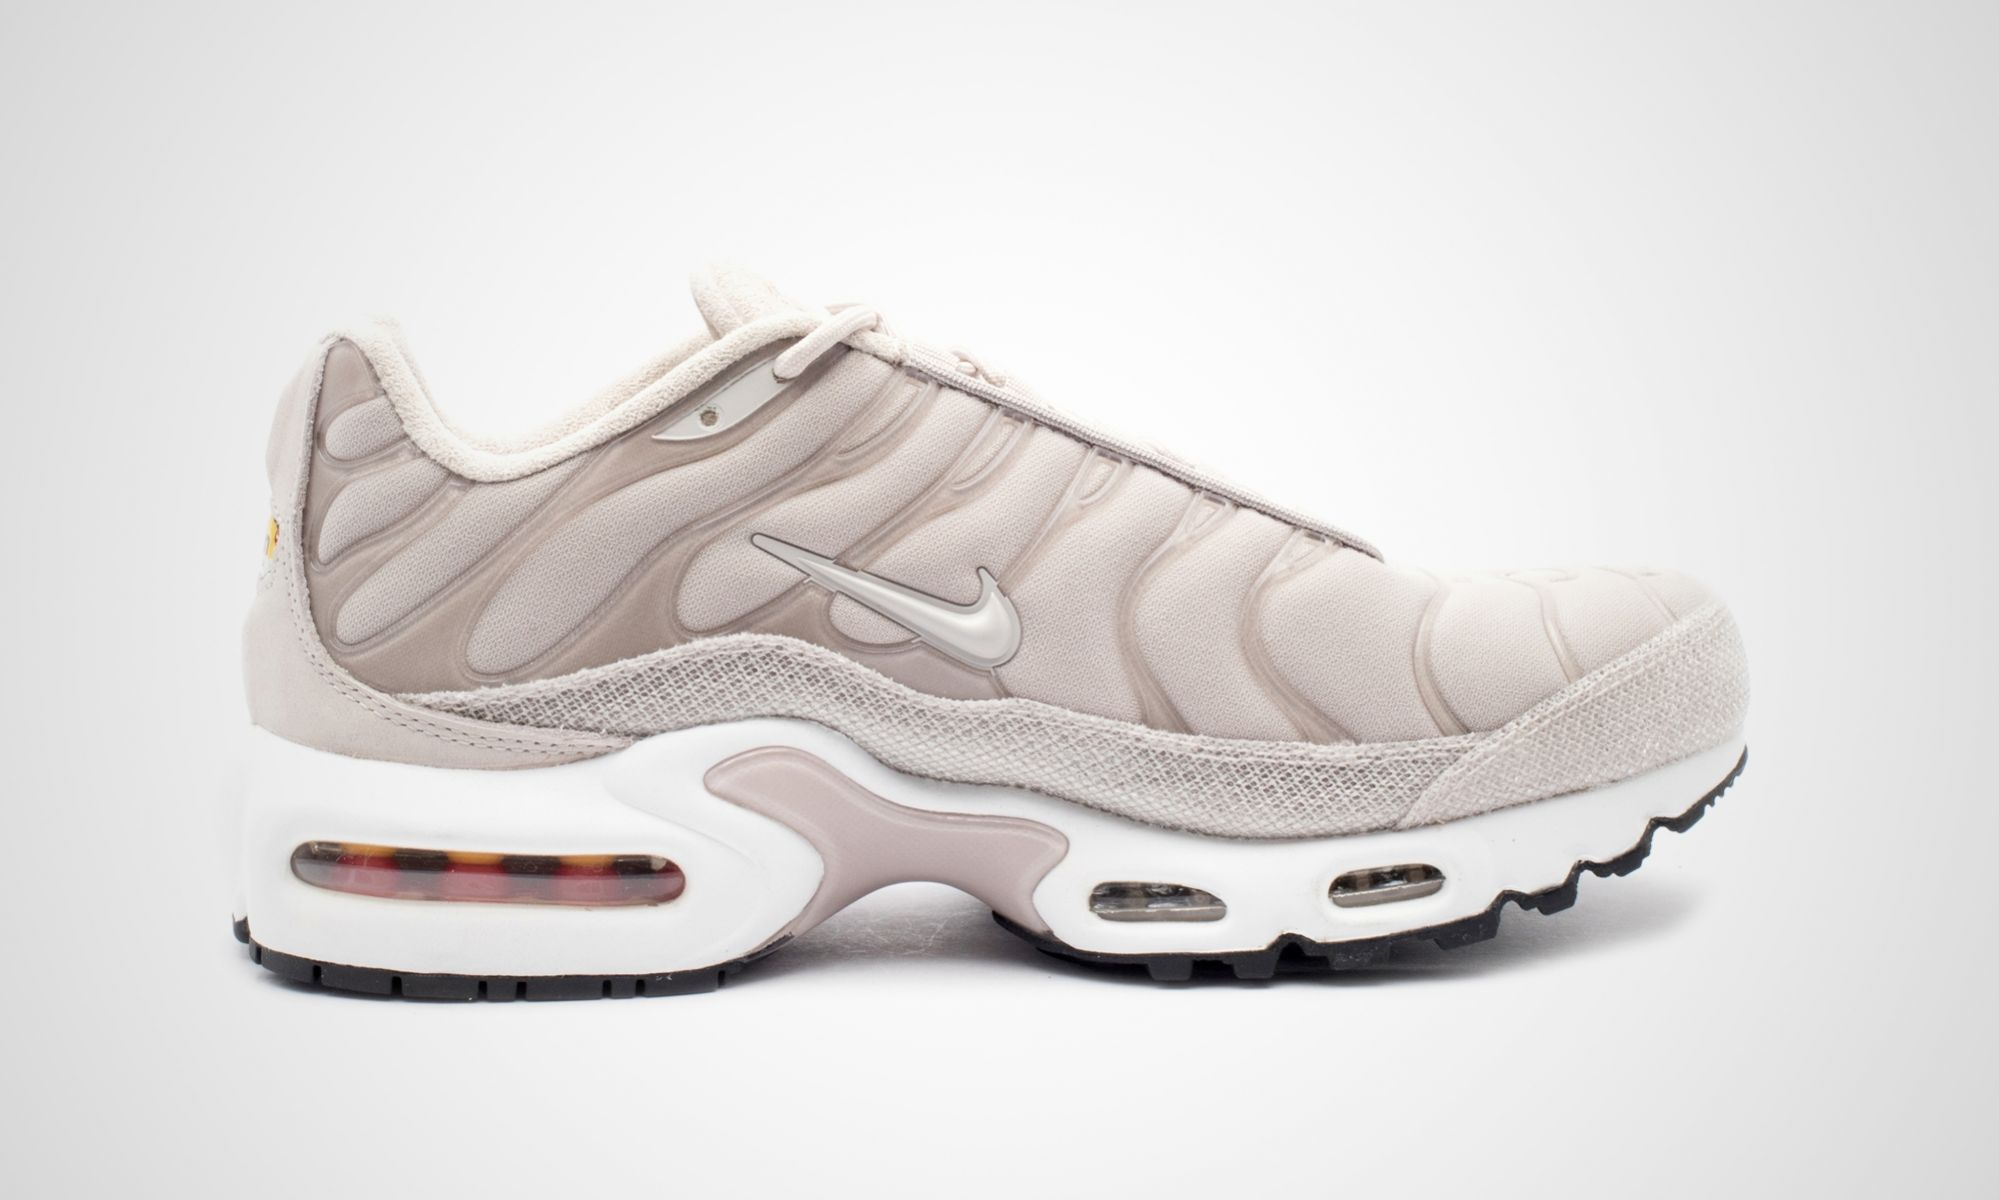 nike-848891-200-wmns-air-max-plus-prm-3